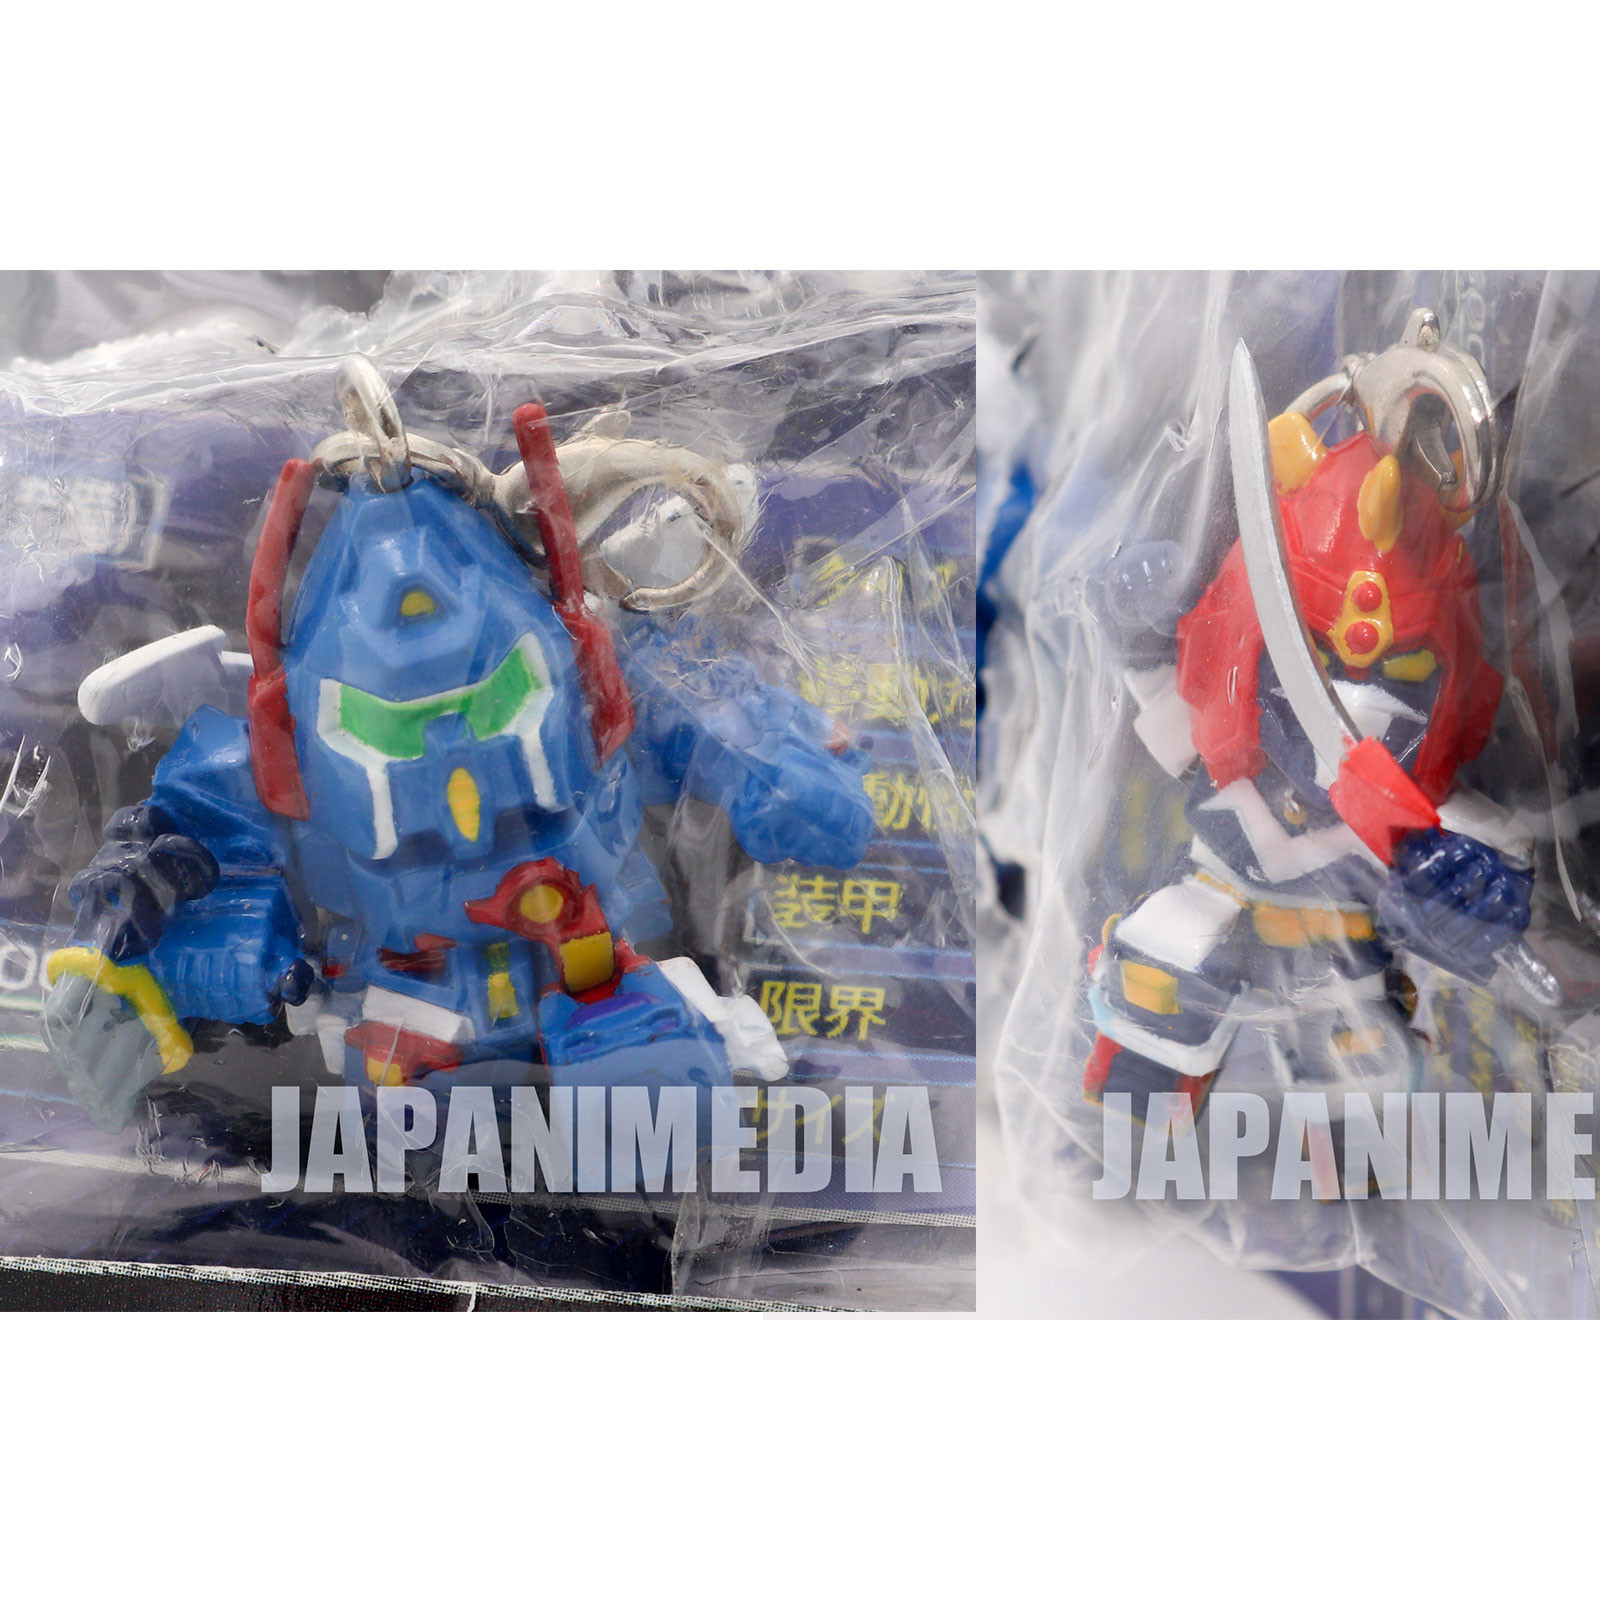 Voltes Ⅴ & Xabungle Super Robort Wars Mascot Figure JAPAN ANIME TOKUSATSU